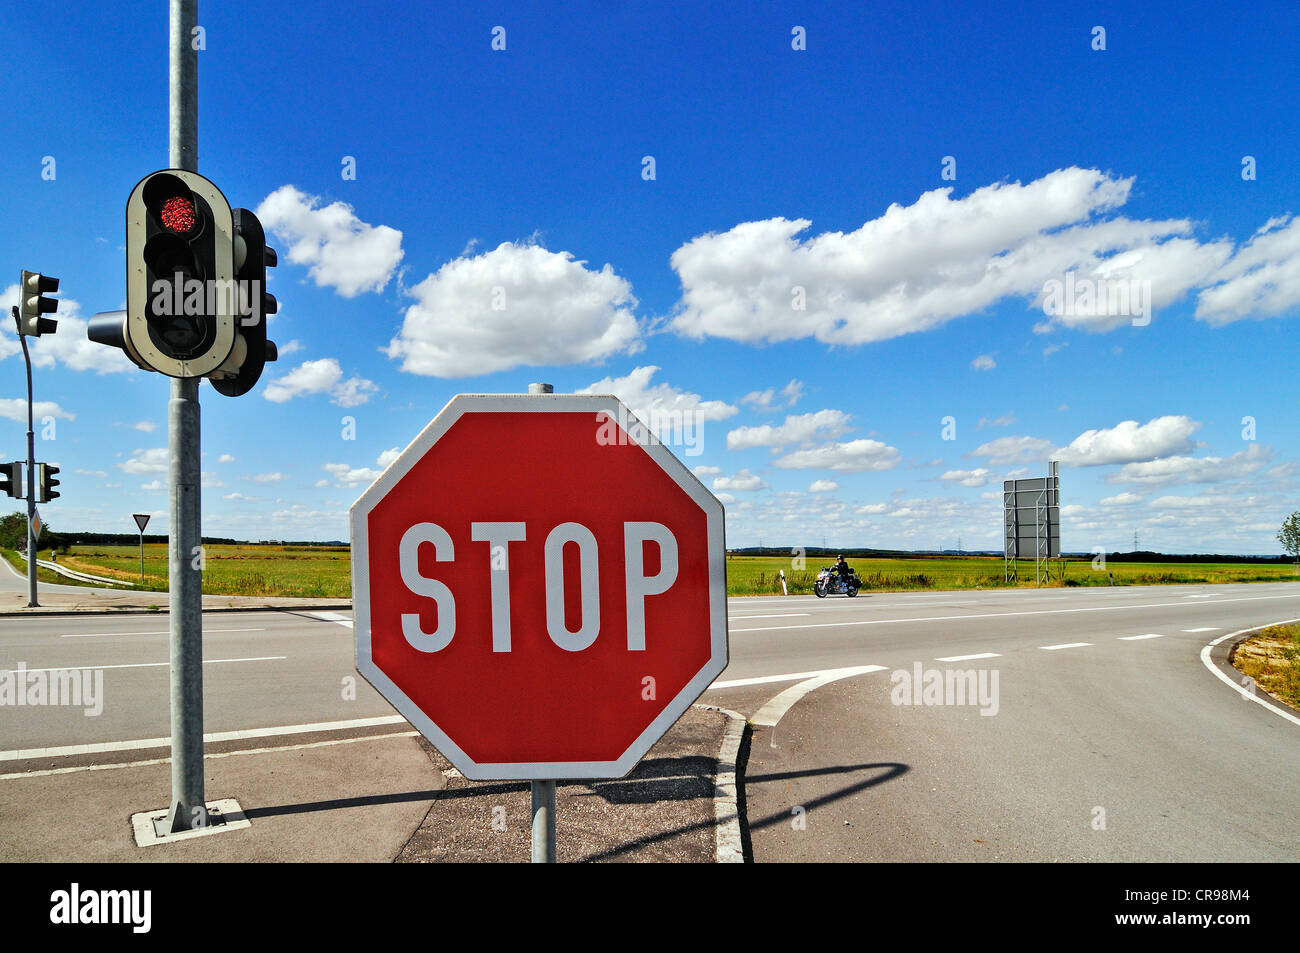 Stop sign and traffic lights, blue sky with fleecy clouds, Garching near Munich, Bavaria, Germany, Europe - Stock Image